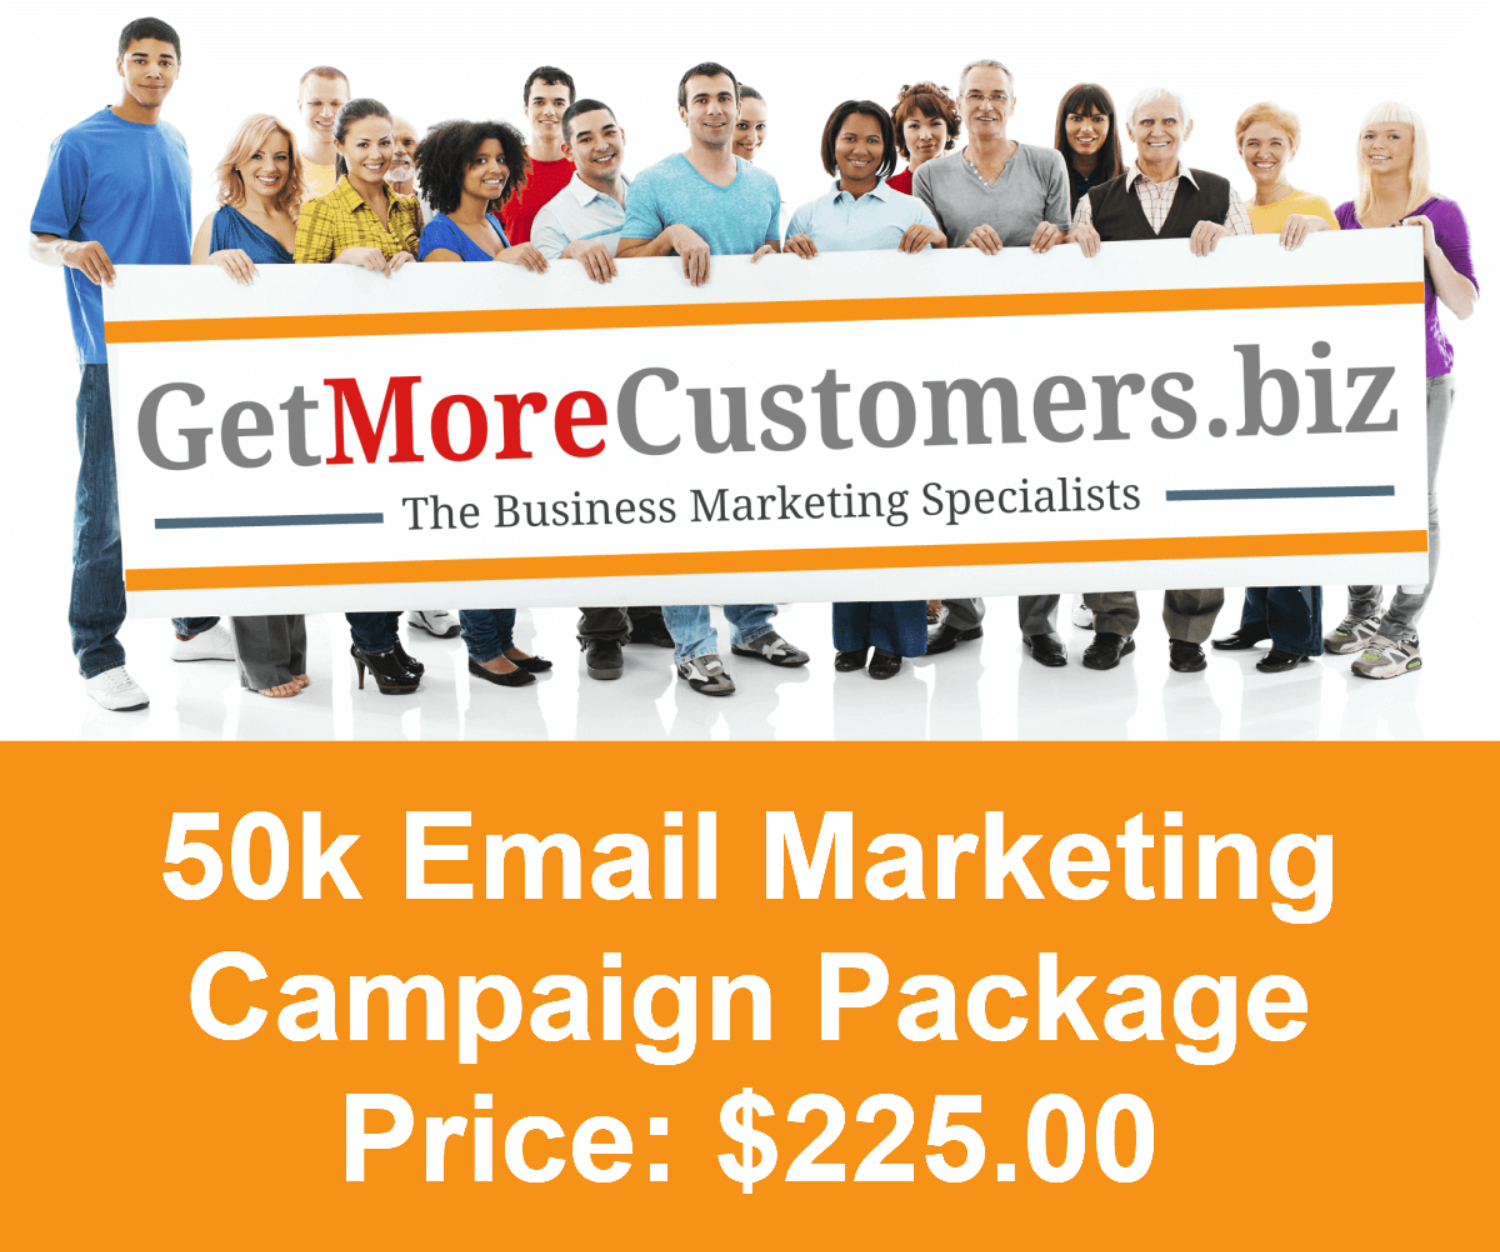 50k Email Campaign - $225.00